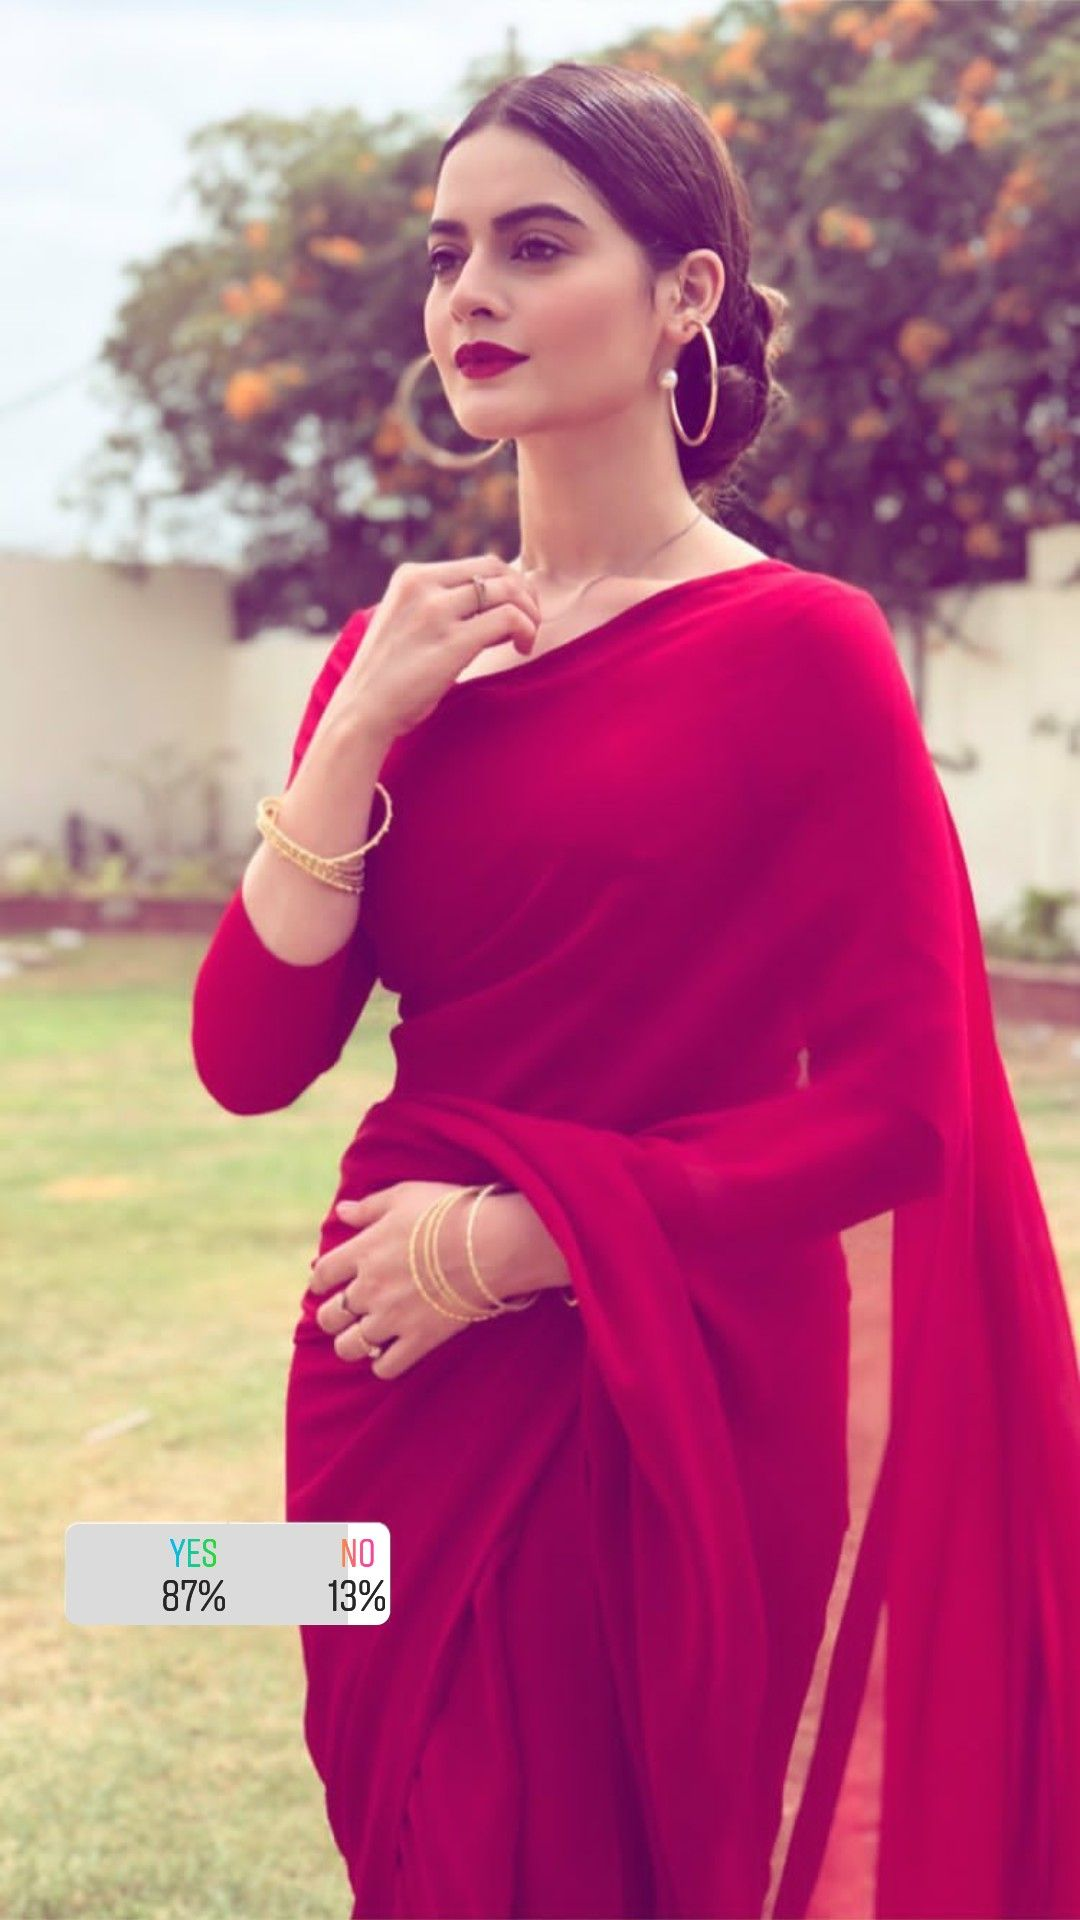 db6e12c629a902 Aiman Khan wearing simple red saree (simple and gorgeous looking red silk  saree) Aiman is a Pakistani television actress. She has established a  career in ...